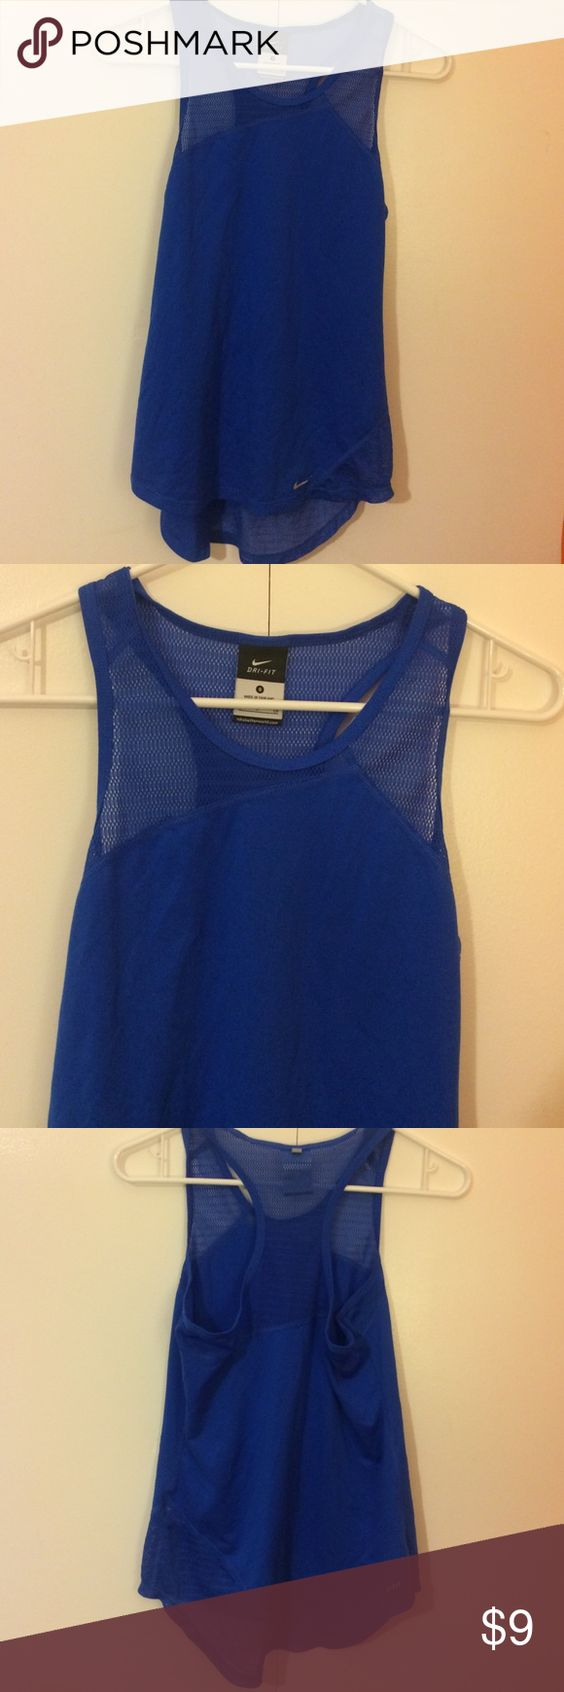 Electric Blue Nike Tank💠 Worn on various occasions! Fits well! The net material is soft! Loose fitting! Comment if you have any questions!☺ Nike Tops Tank Tops